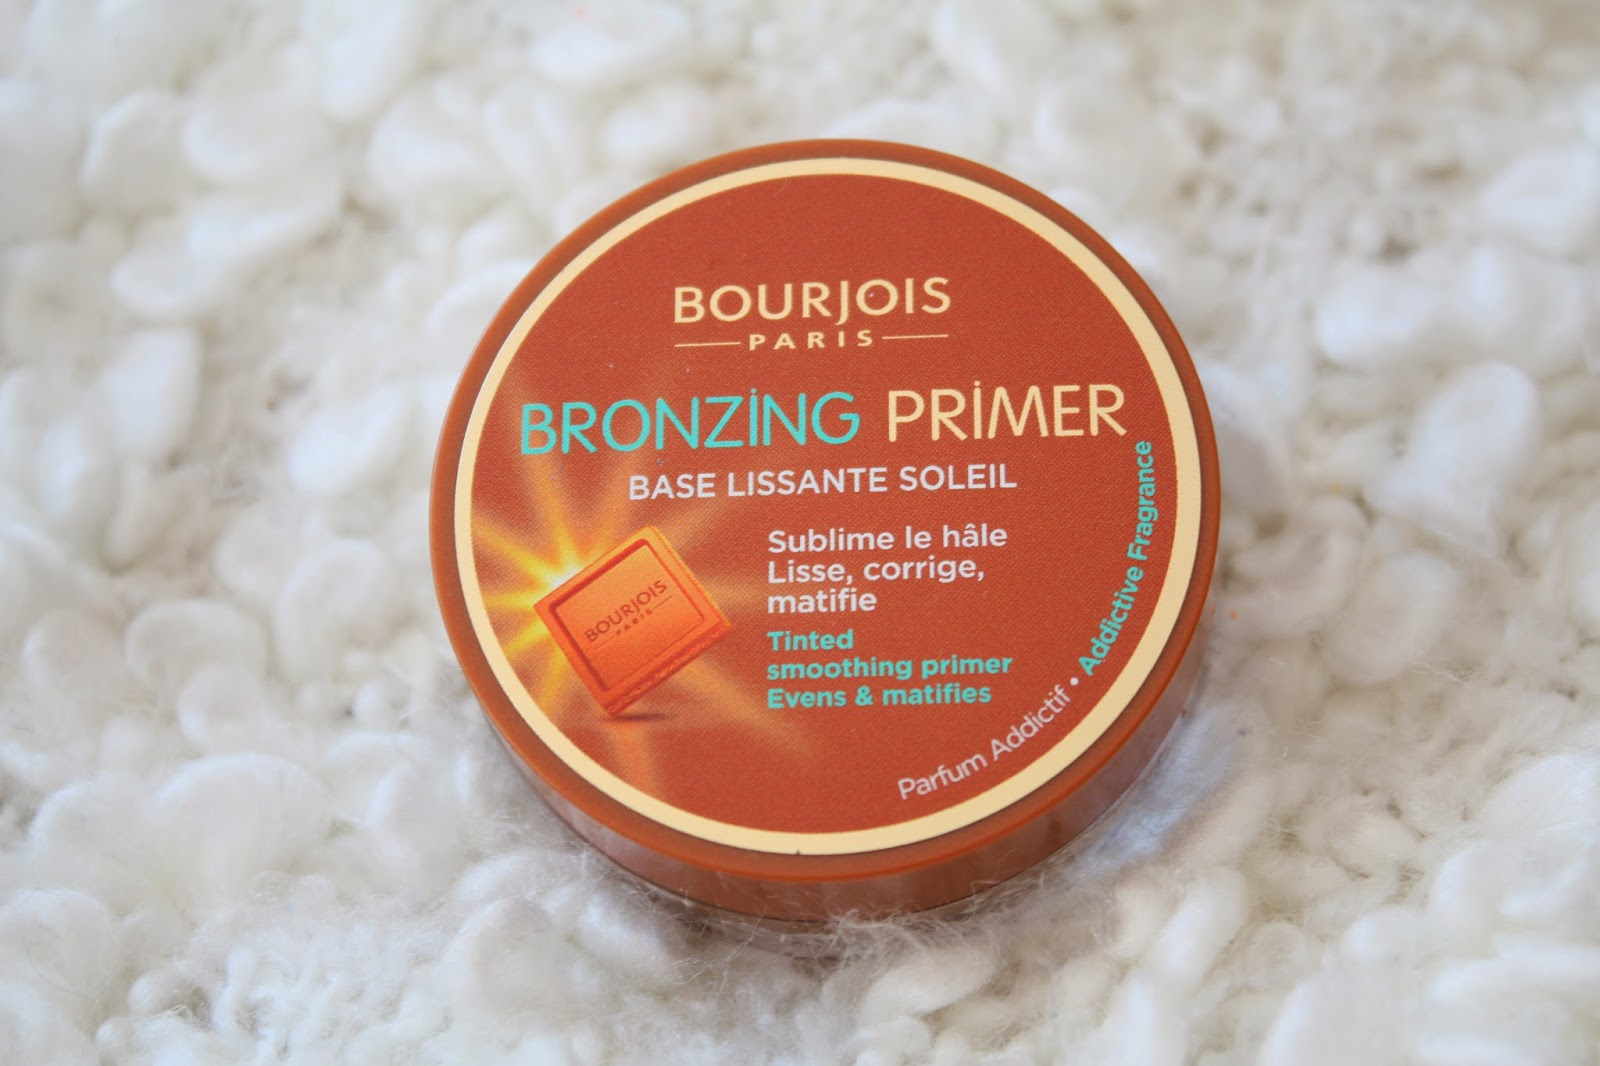 Bourjois Bronzing Primer packaging